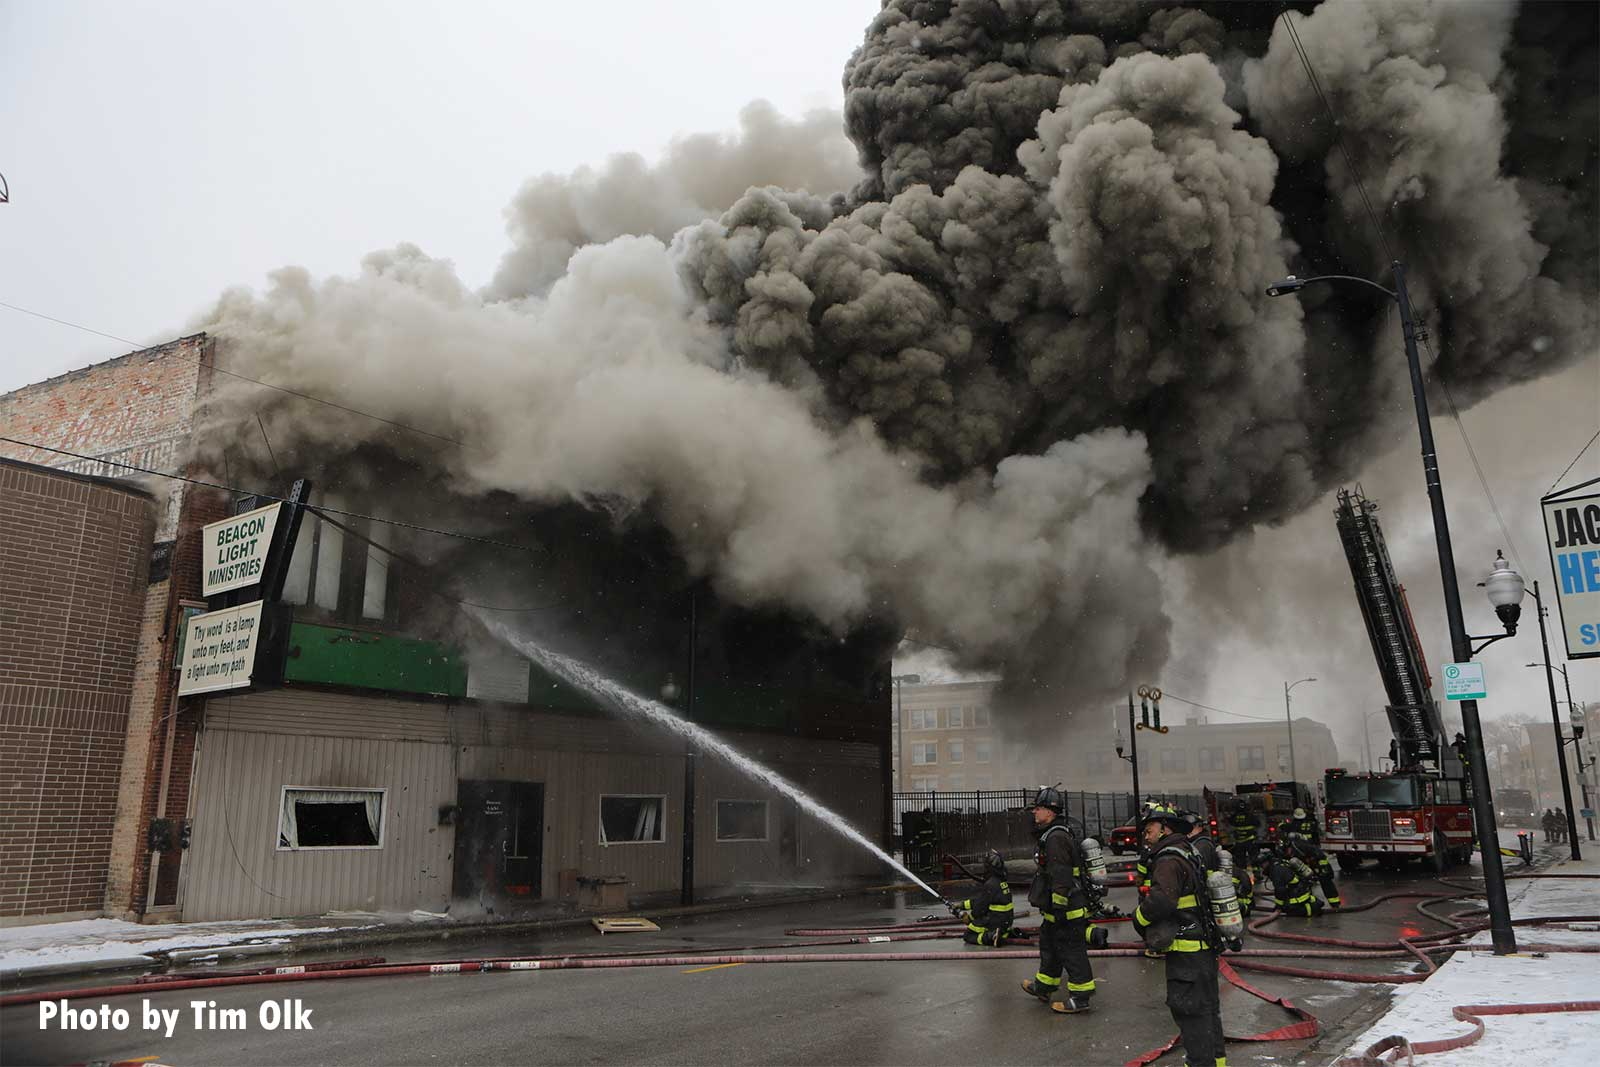 A firefighter directs a stream into the burning building